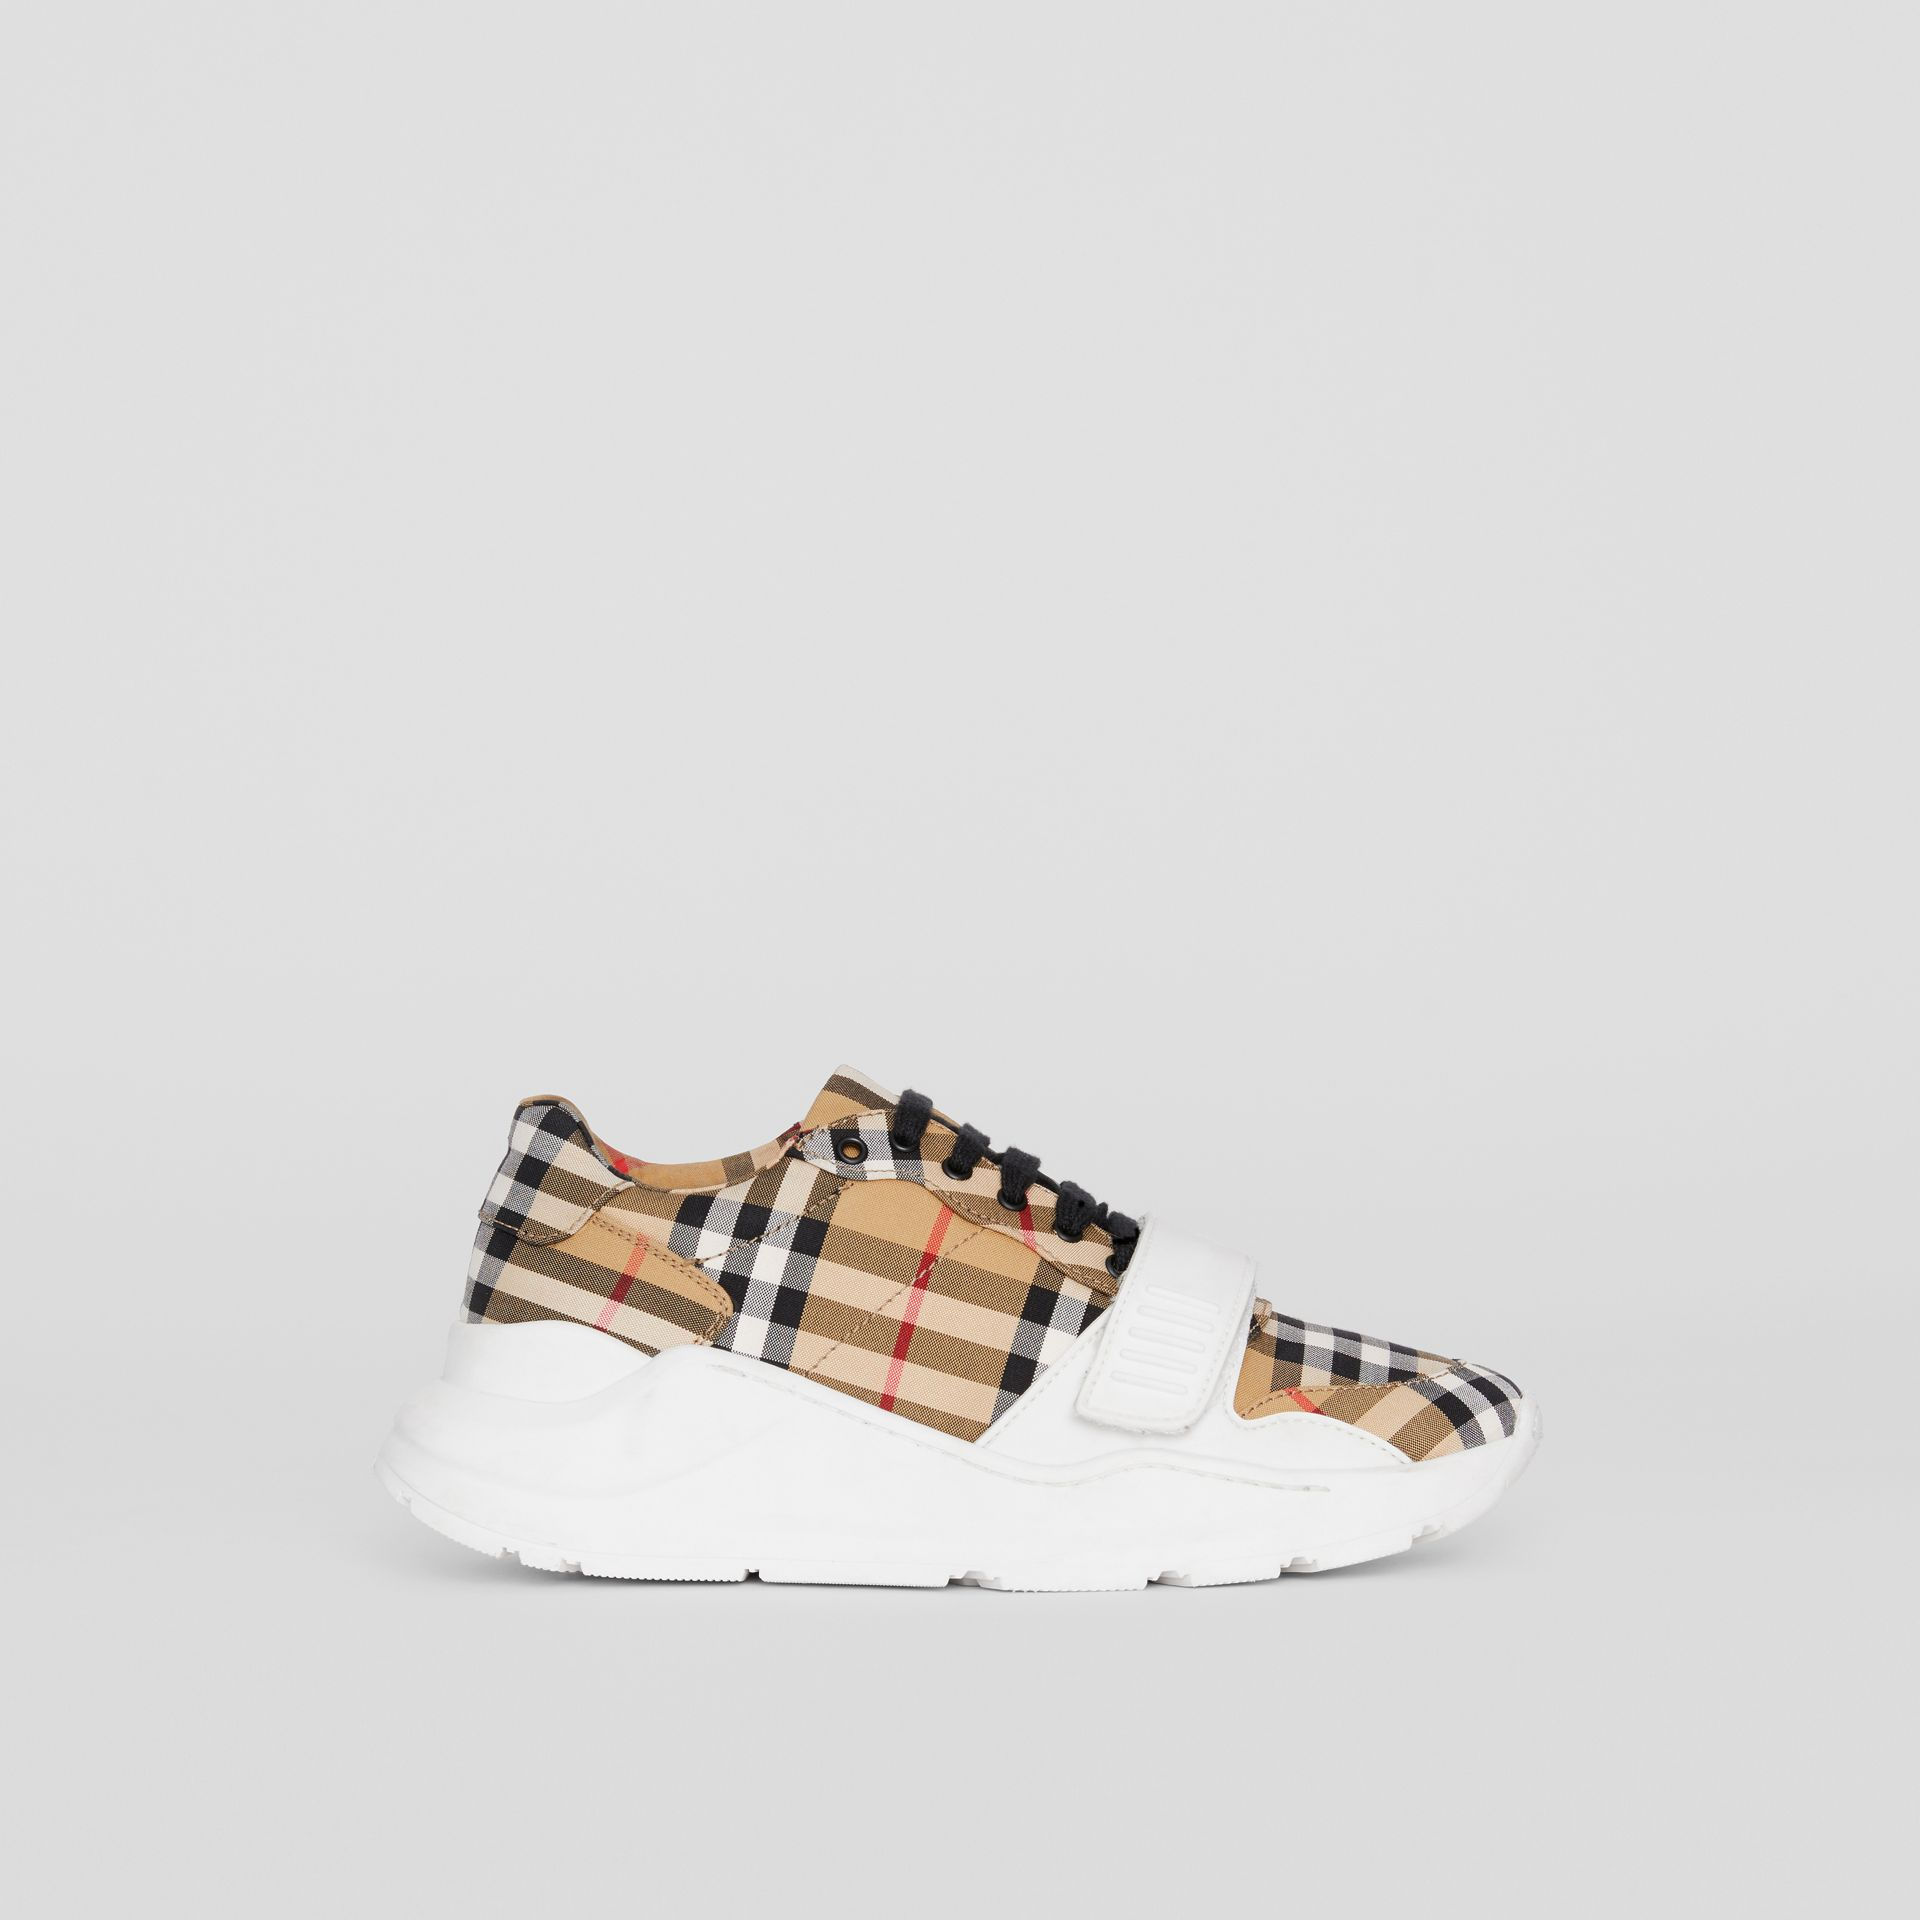 Sneakers en coton Vintage check (Jaune Antique) - Femme | Burberry Canada - photo de la galerie 5